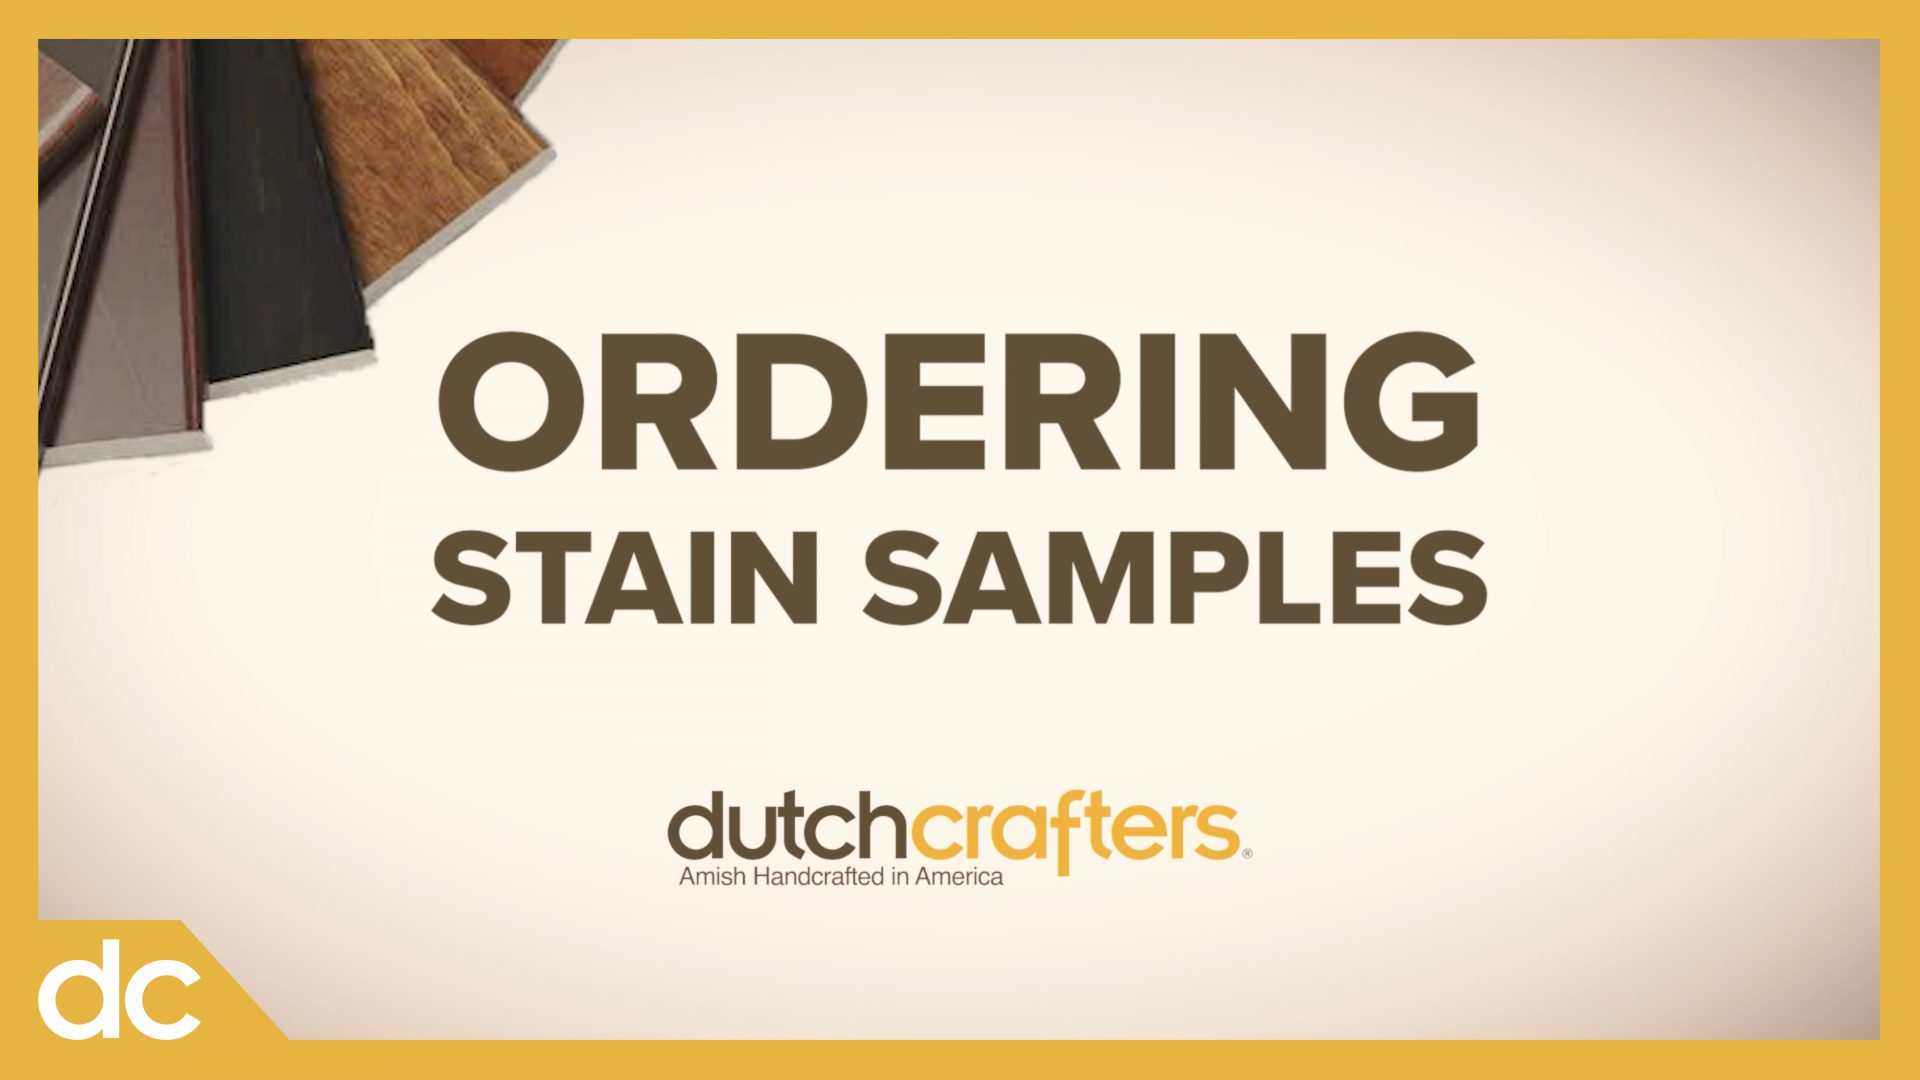 Amish Solid Wood Stain Samples at DutchCrafters Video